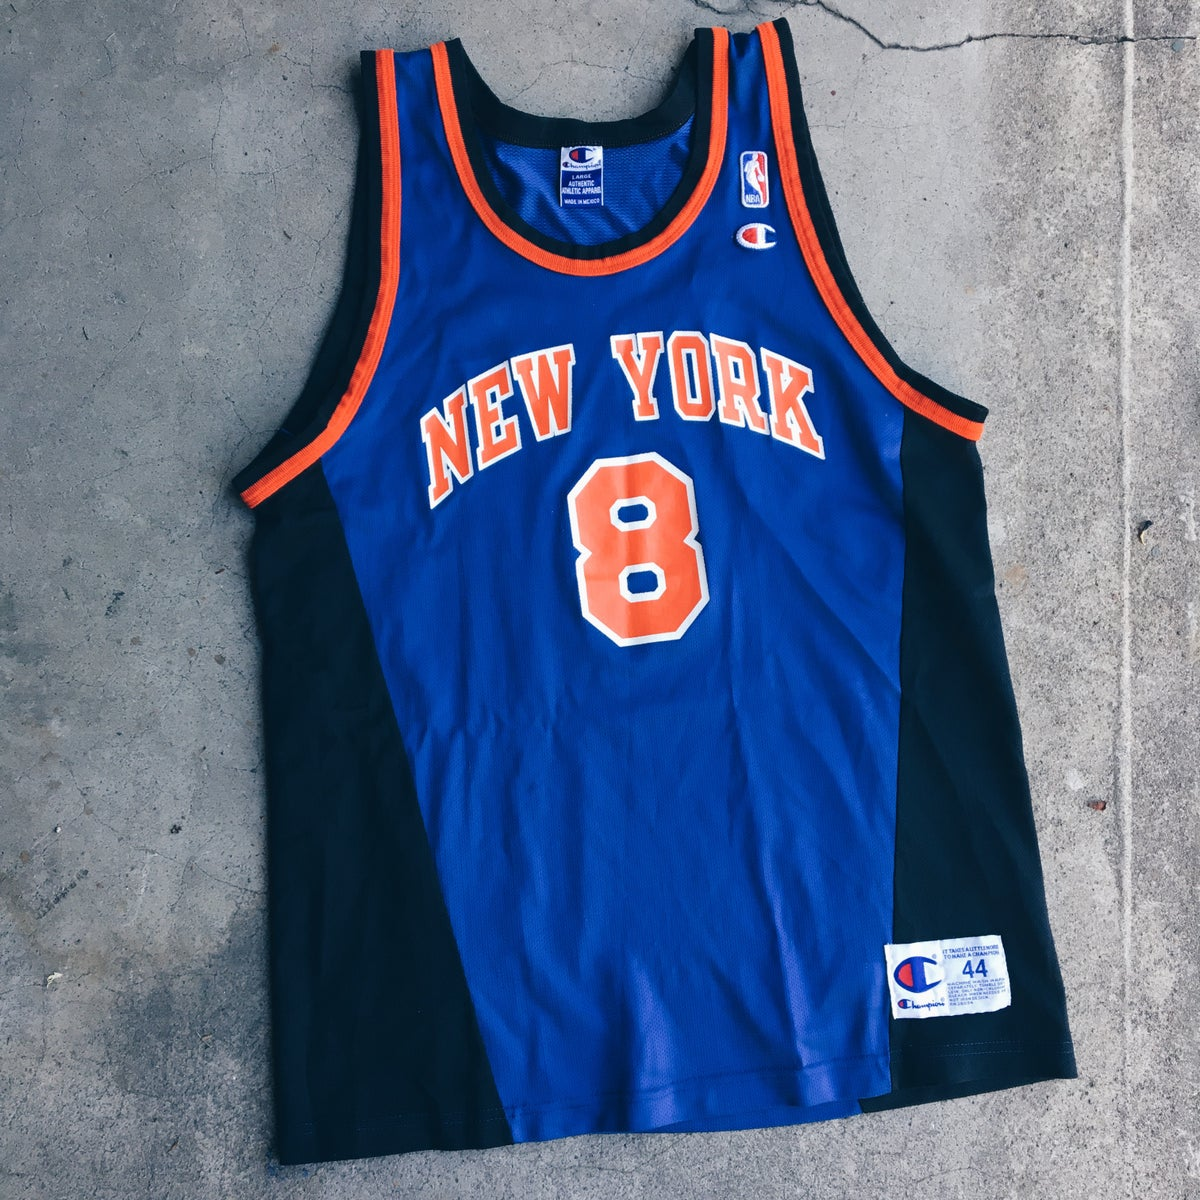 Image of Original 90's Champion Latrell Sprewell Knicks Jersey.